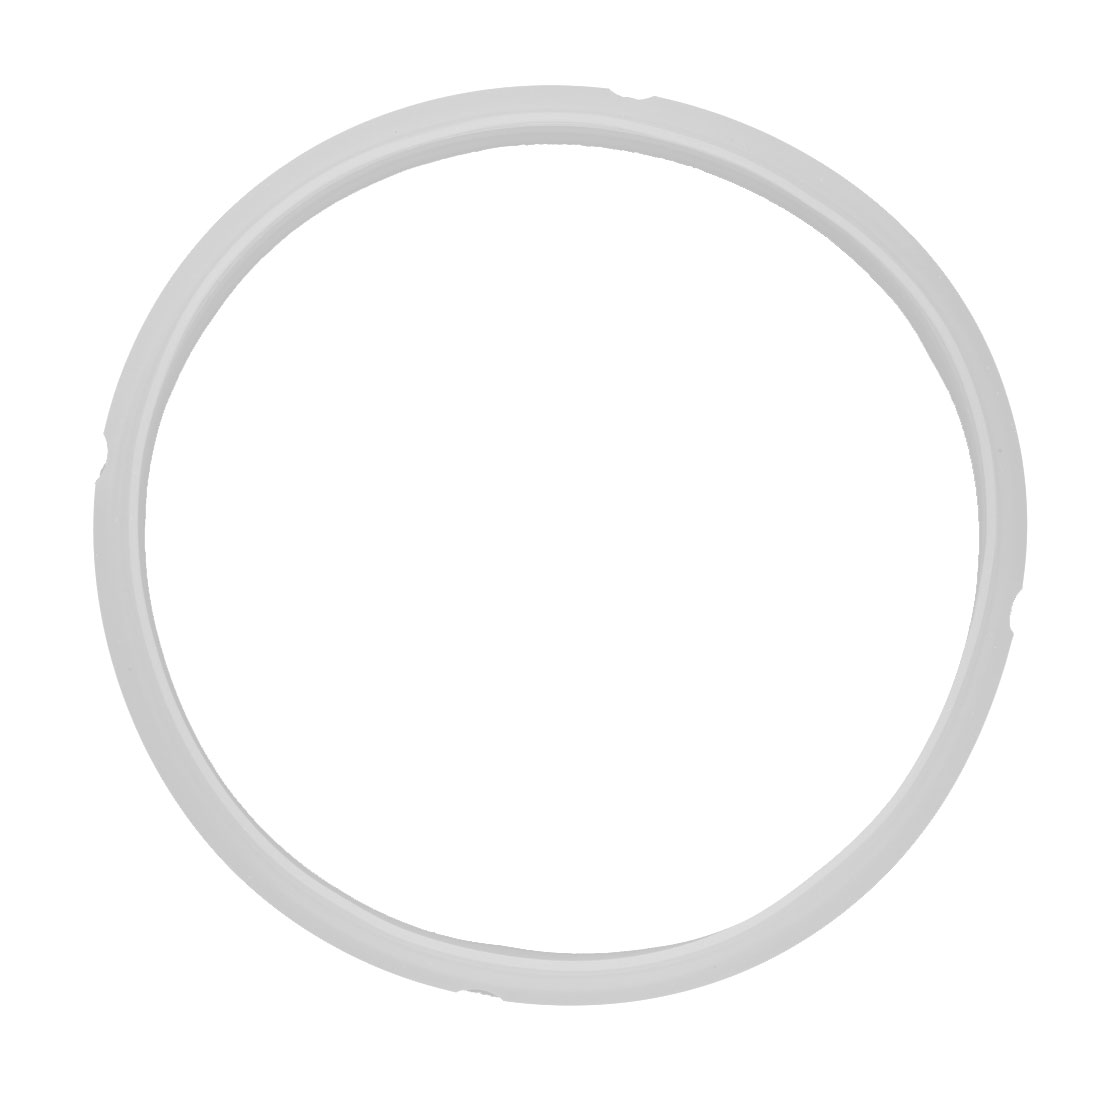 Household 3-4L Electric Pressure Cooker Rubber Round Seal Sealing Ring Circle Gasket